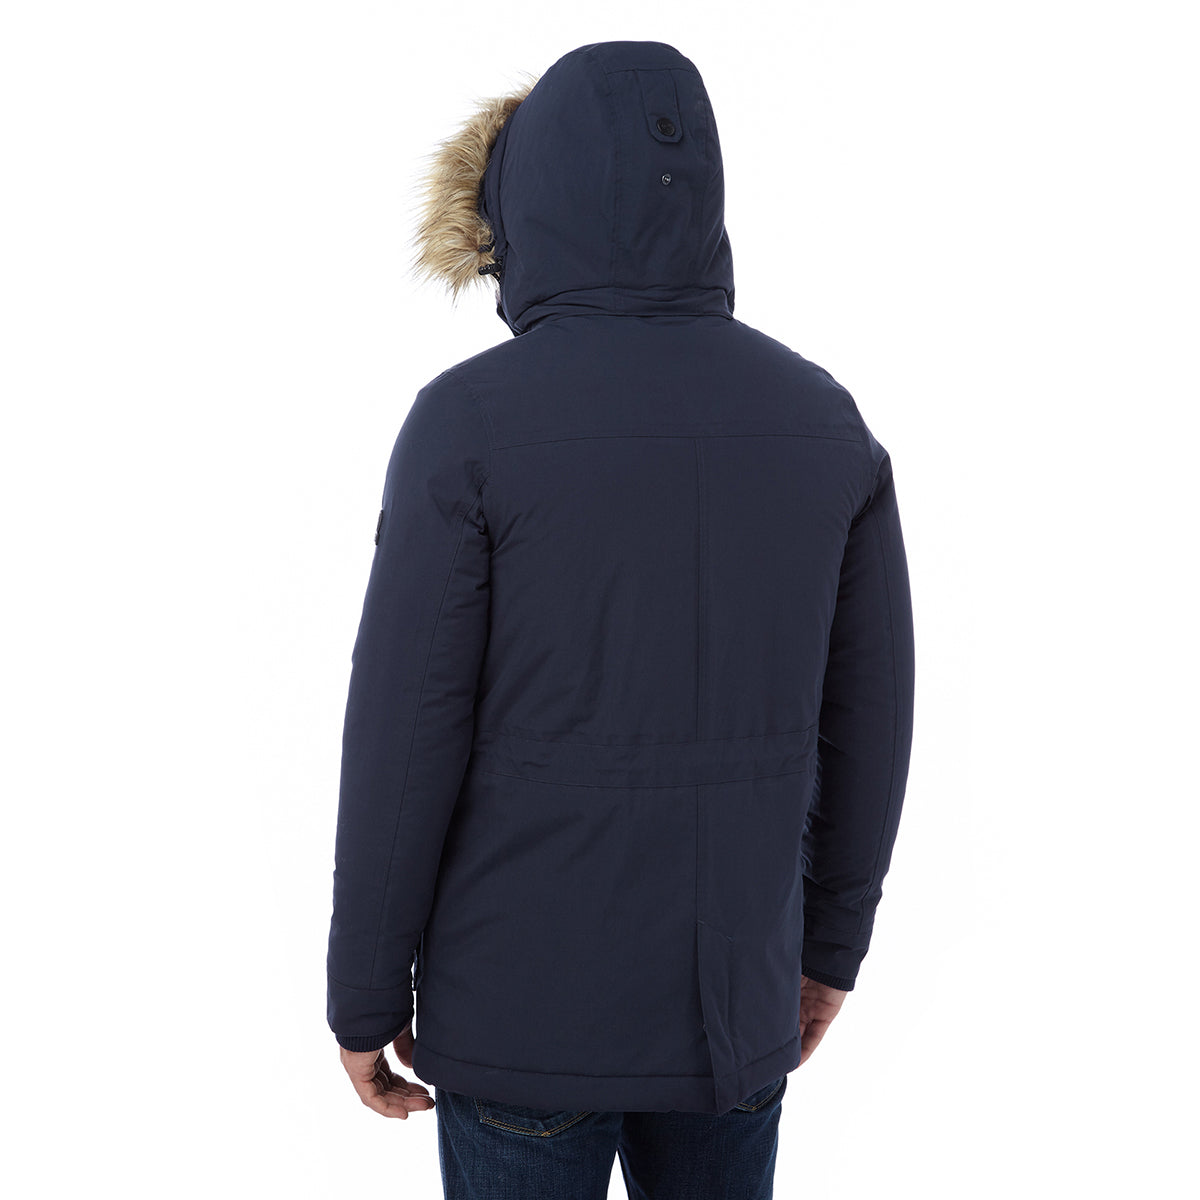 Superior Mens Milatex Jacket - Navy image 4